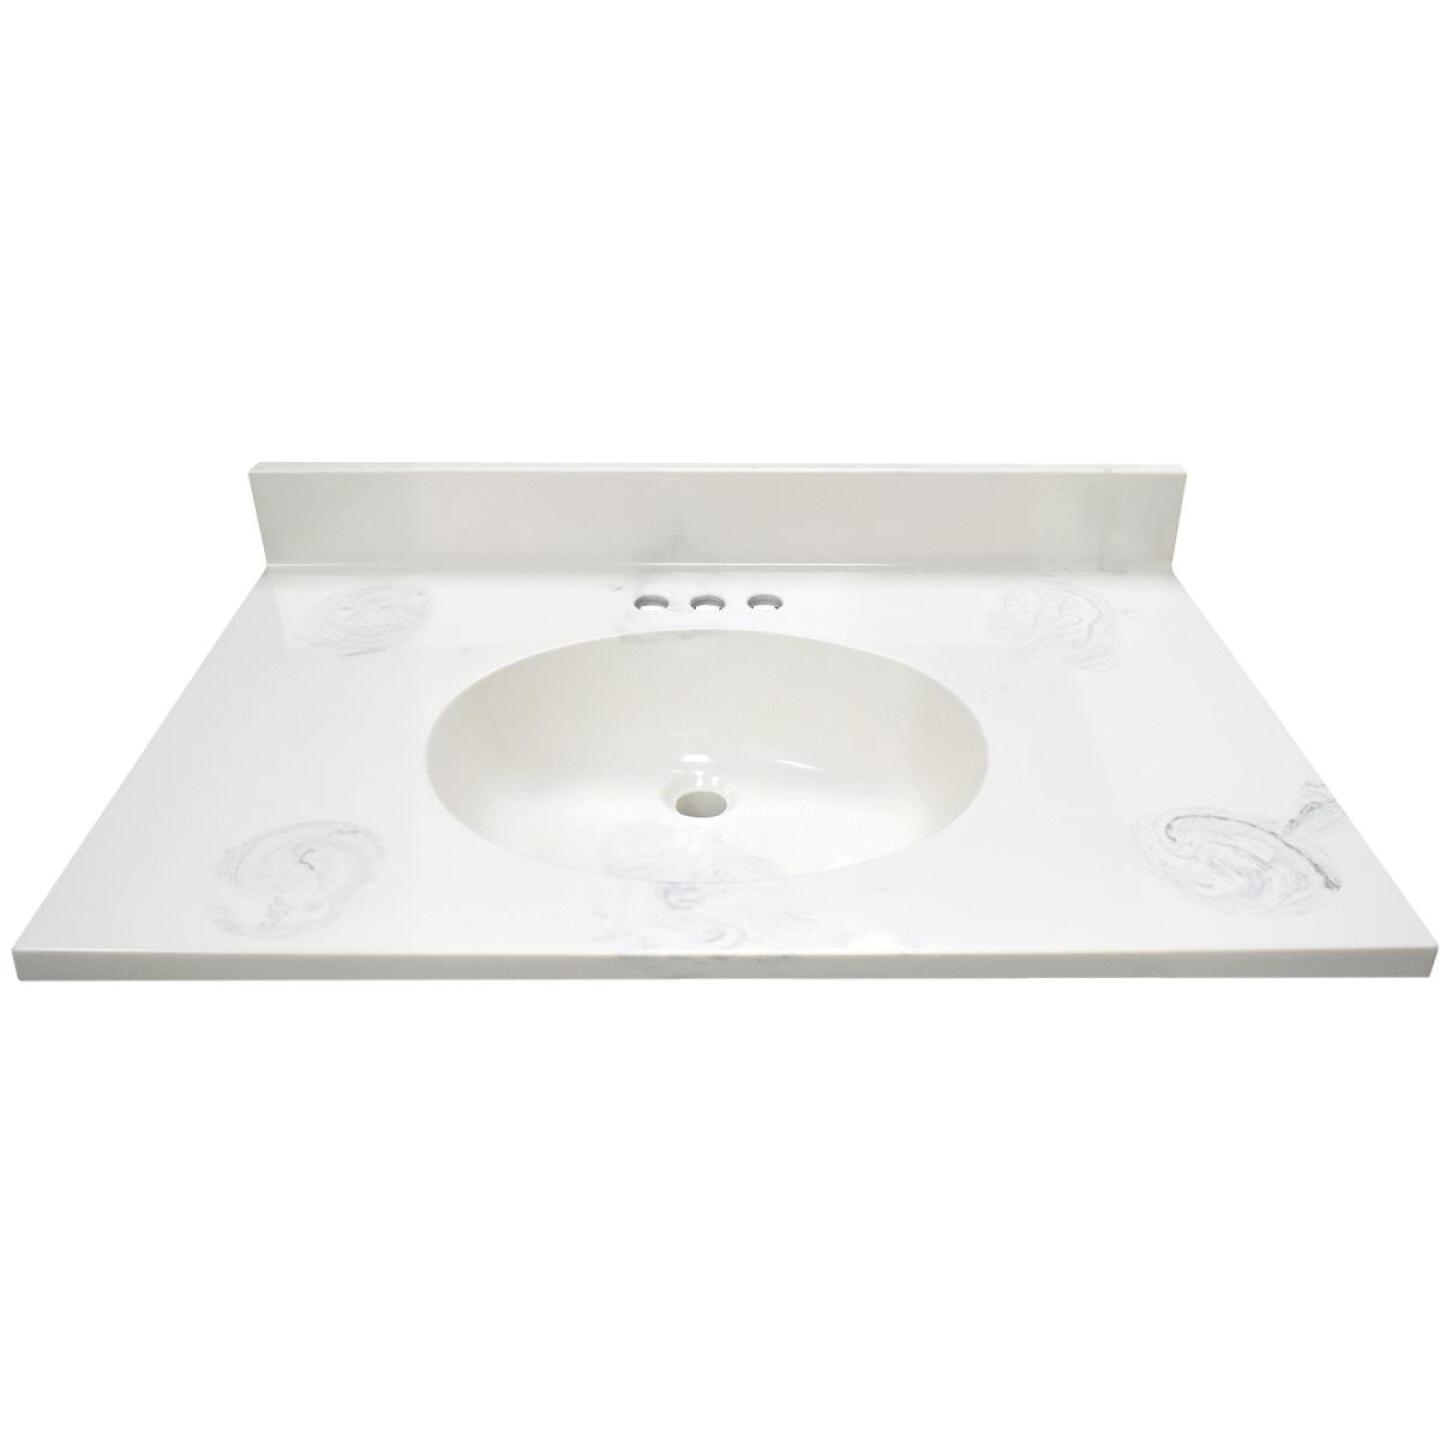 Modular Vanity Tops 31 In. W x 22 In. D Marbled Dove Gray Cultured Marble Vanity Top with Oval Bowl Image 2